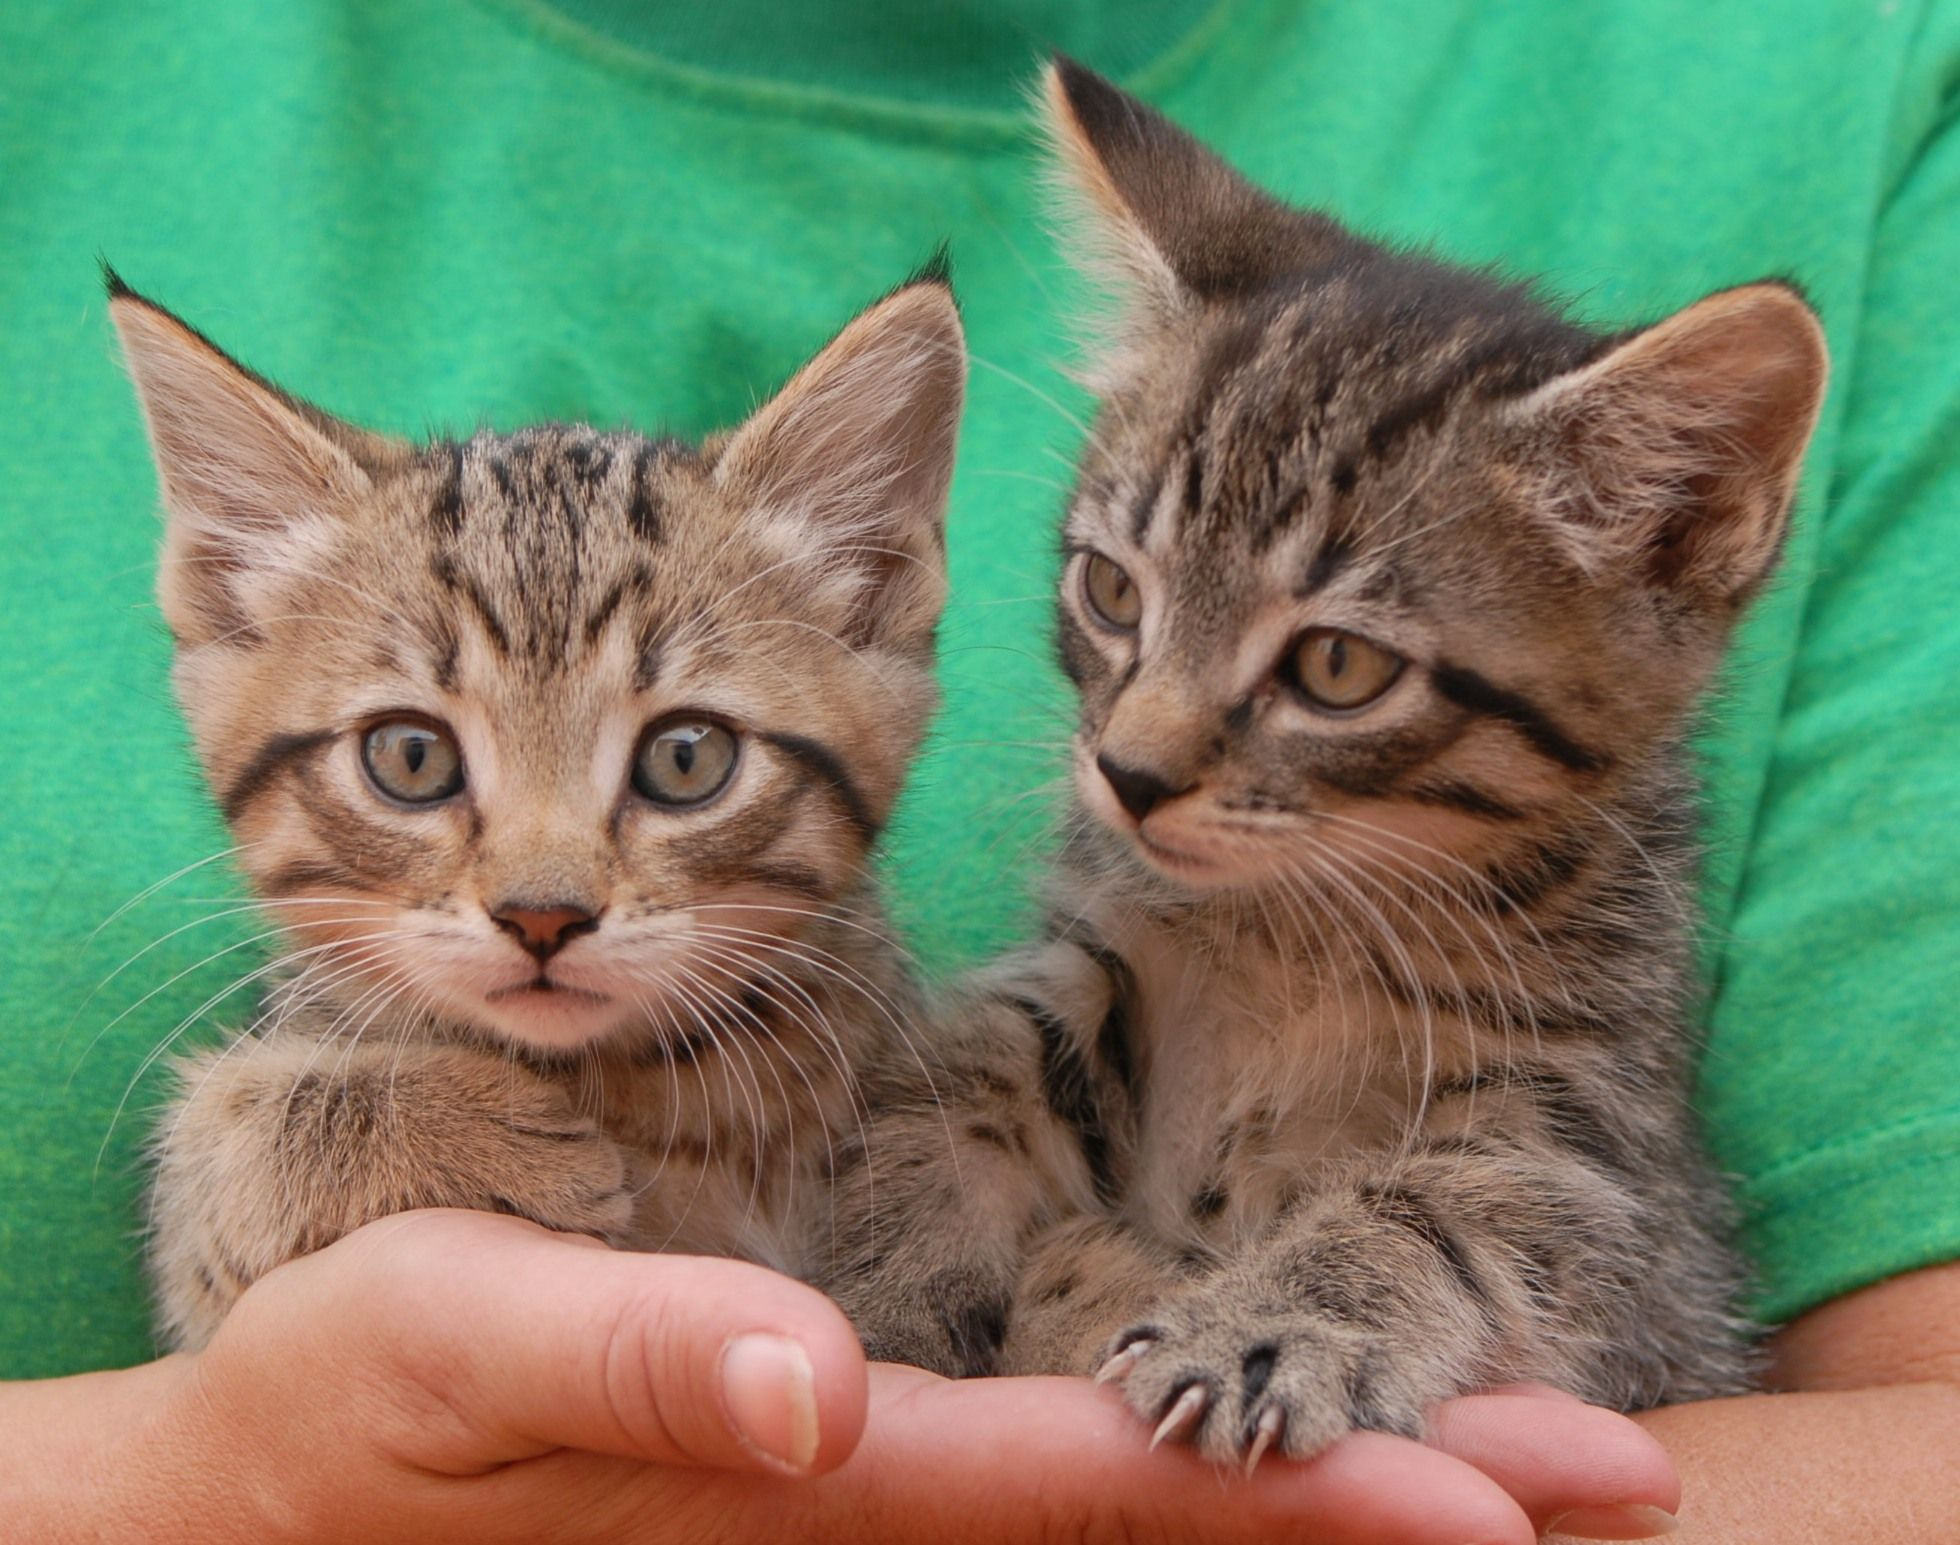 Madeline & Raccoon, sister and brother, are from a rescued